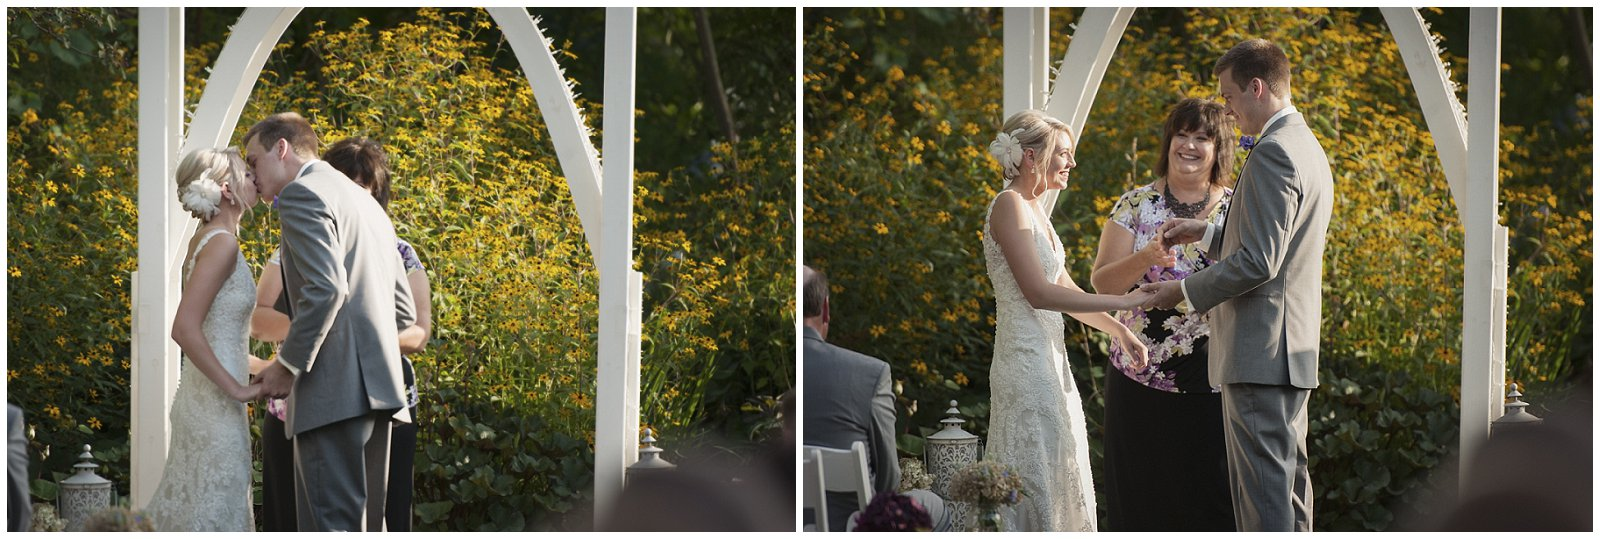 21_B2Photography-Lakeville-Wedding